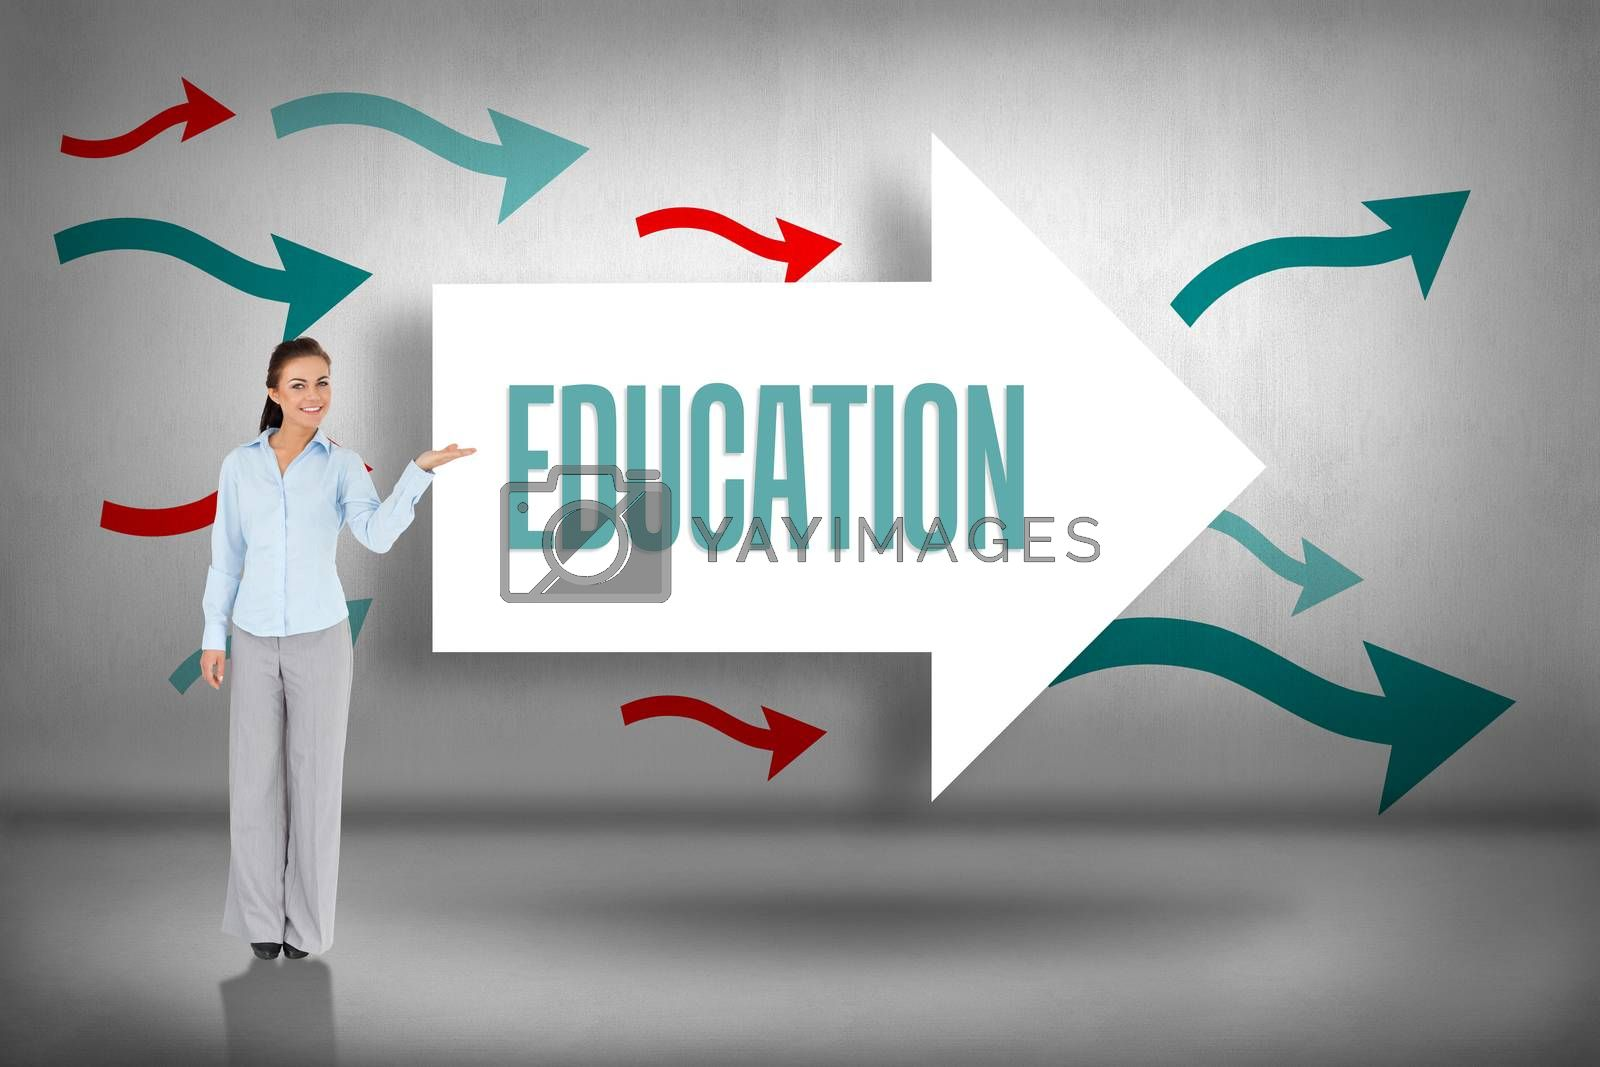 Education against arrows pointing by Wavebreakmedia